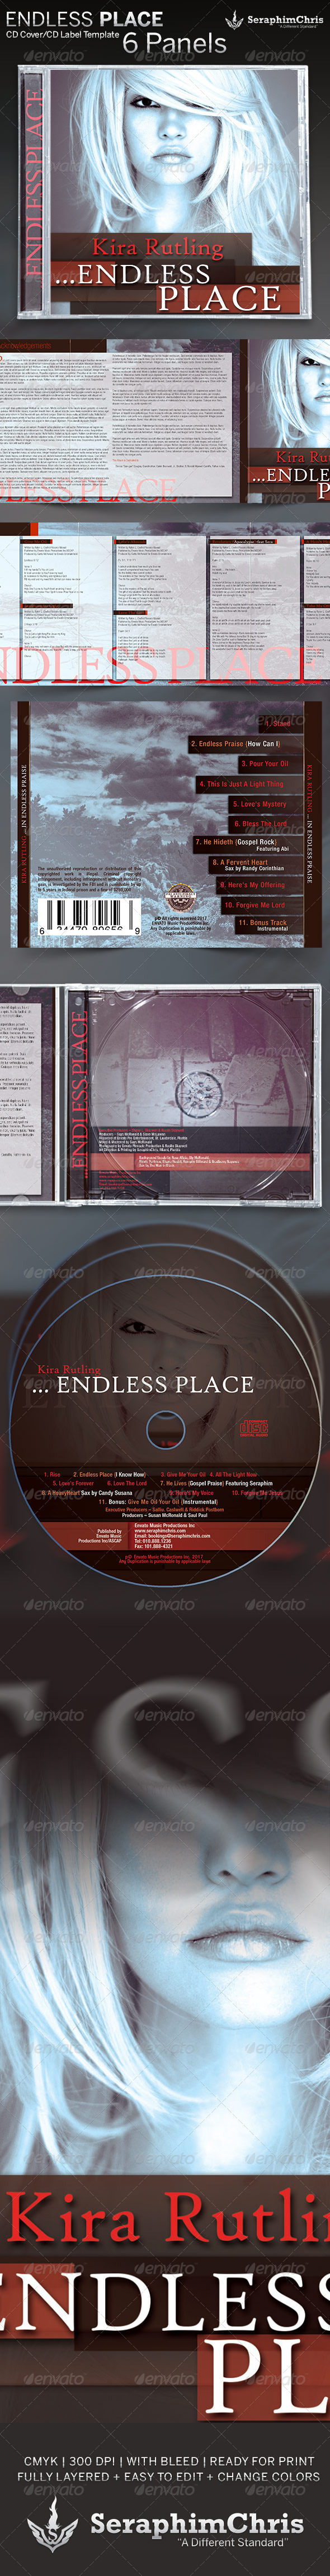 GraphicRiver Endless Place CD Artwork Package Template 5283627